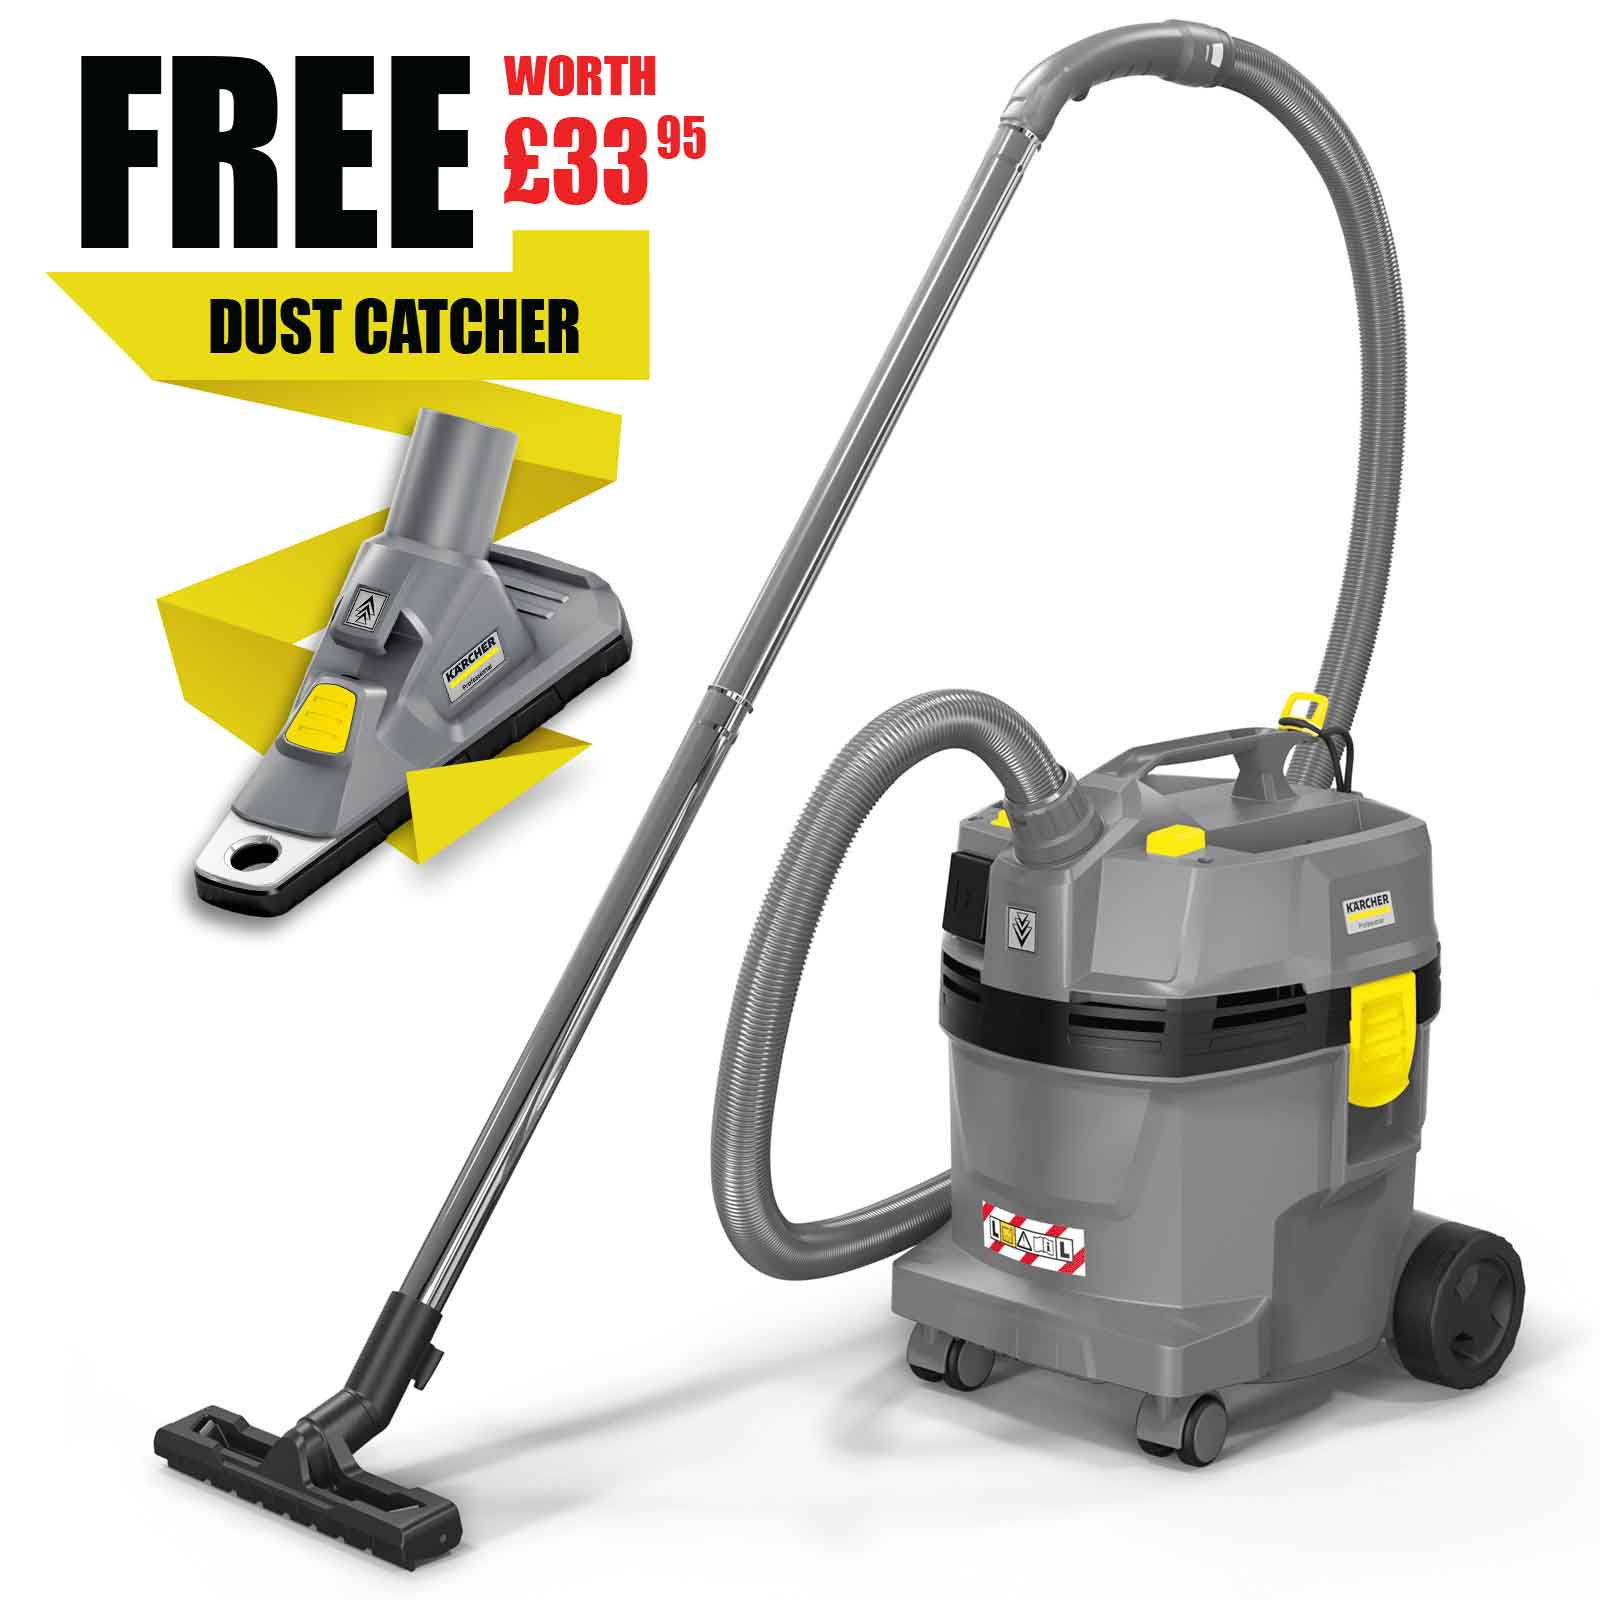 Image of Karcher NT 22/1 AP TE Professional Vacuum Cleaner 240v